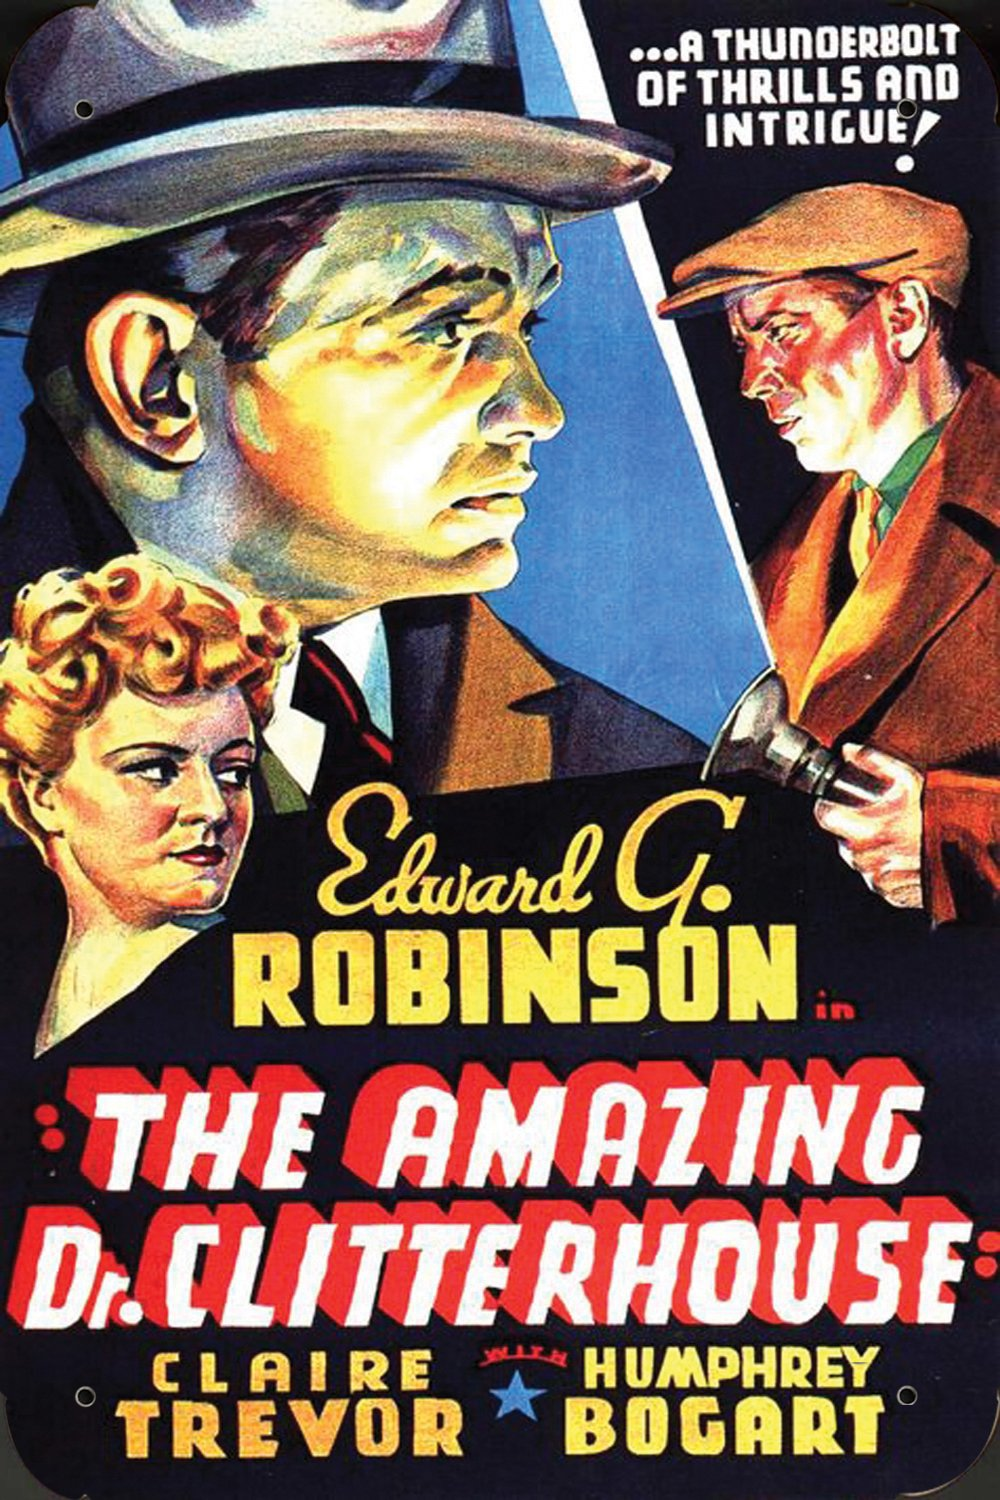 Humphrey Bogart, Edward G. Robinson, and Claire Trevor in The Amazing Dr. Clitterhouse (1938)